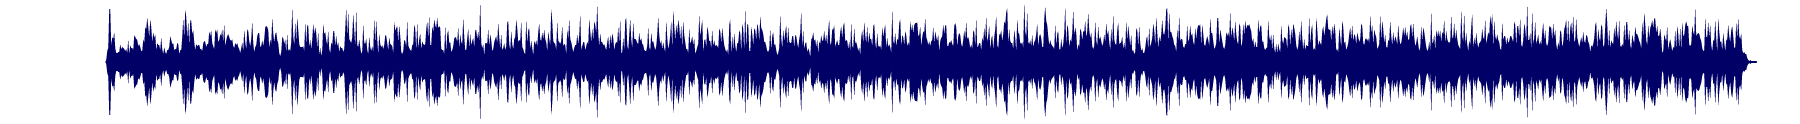 waveform of track #68477